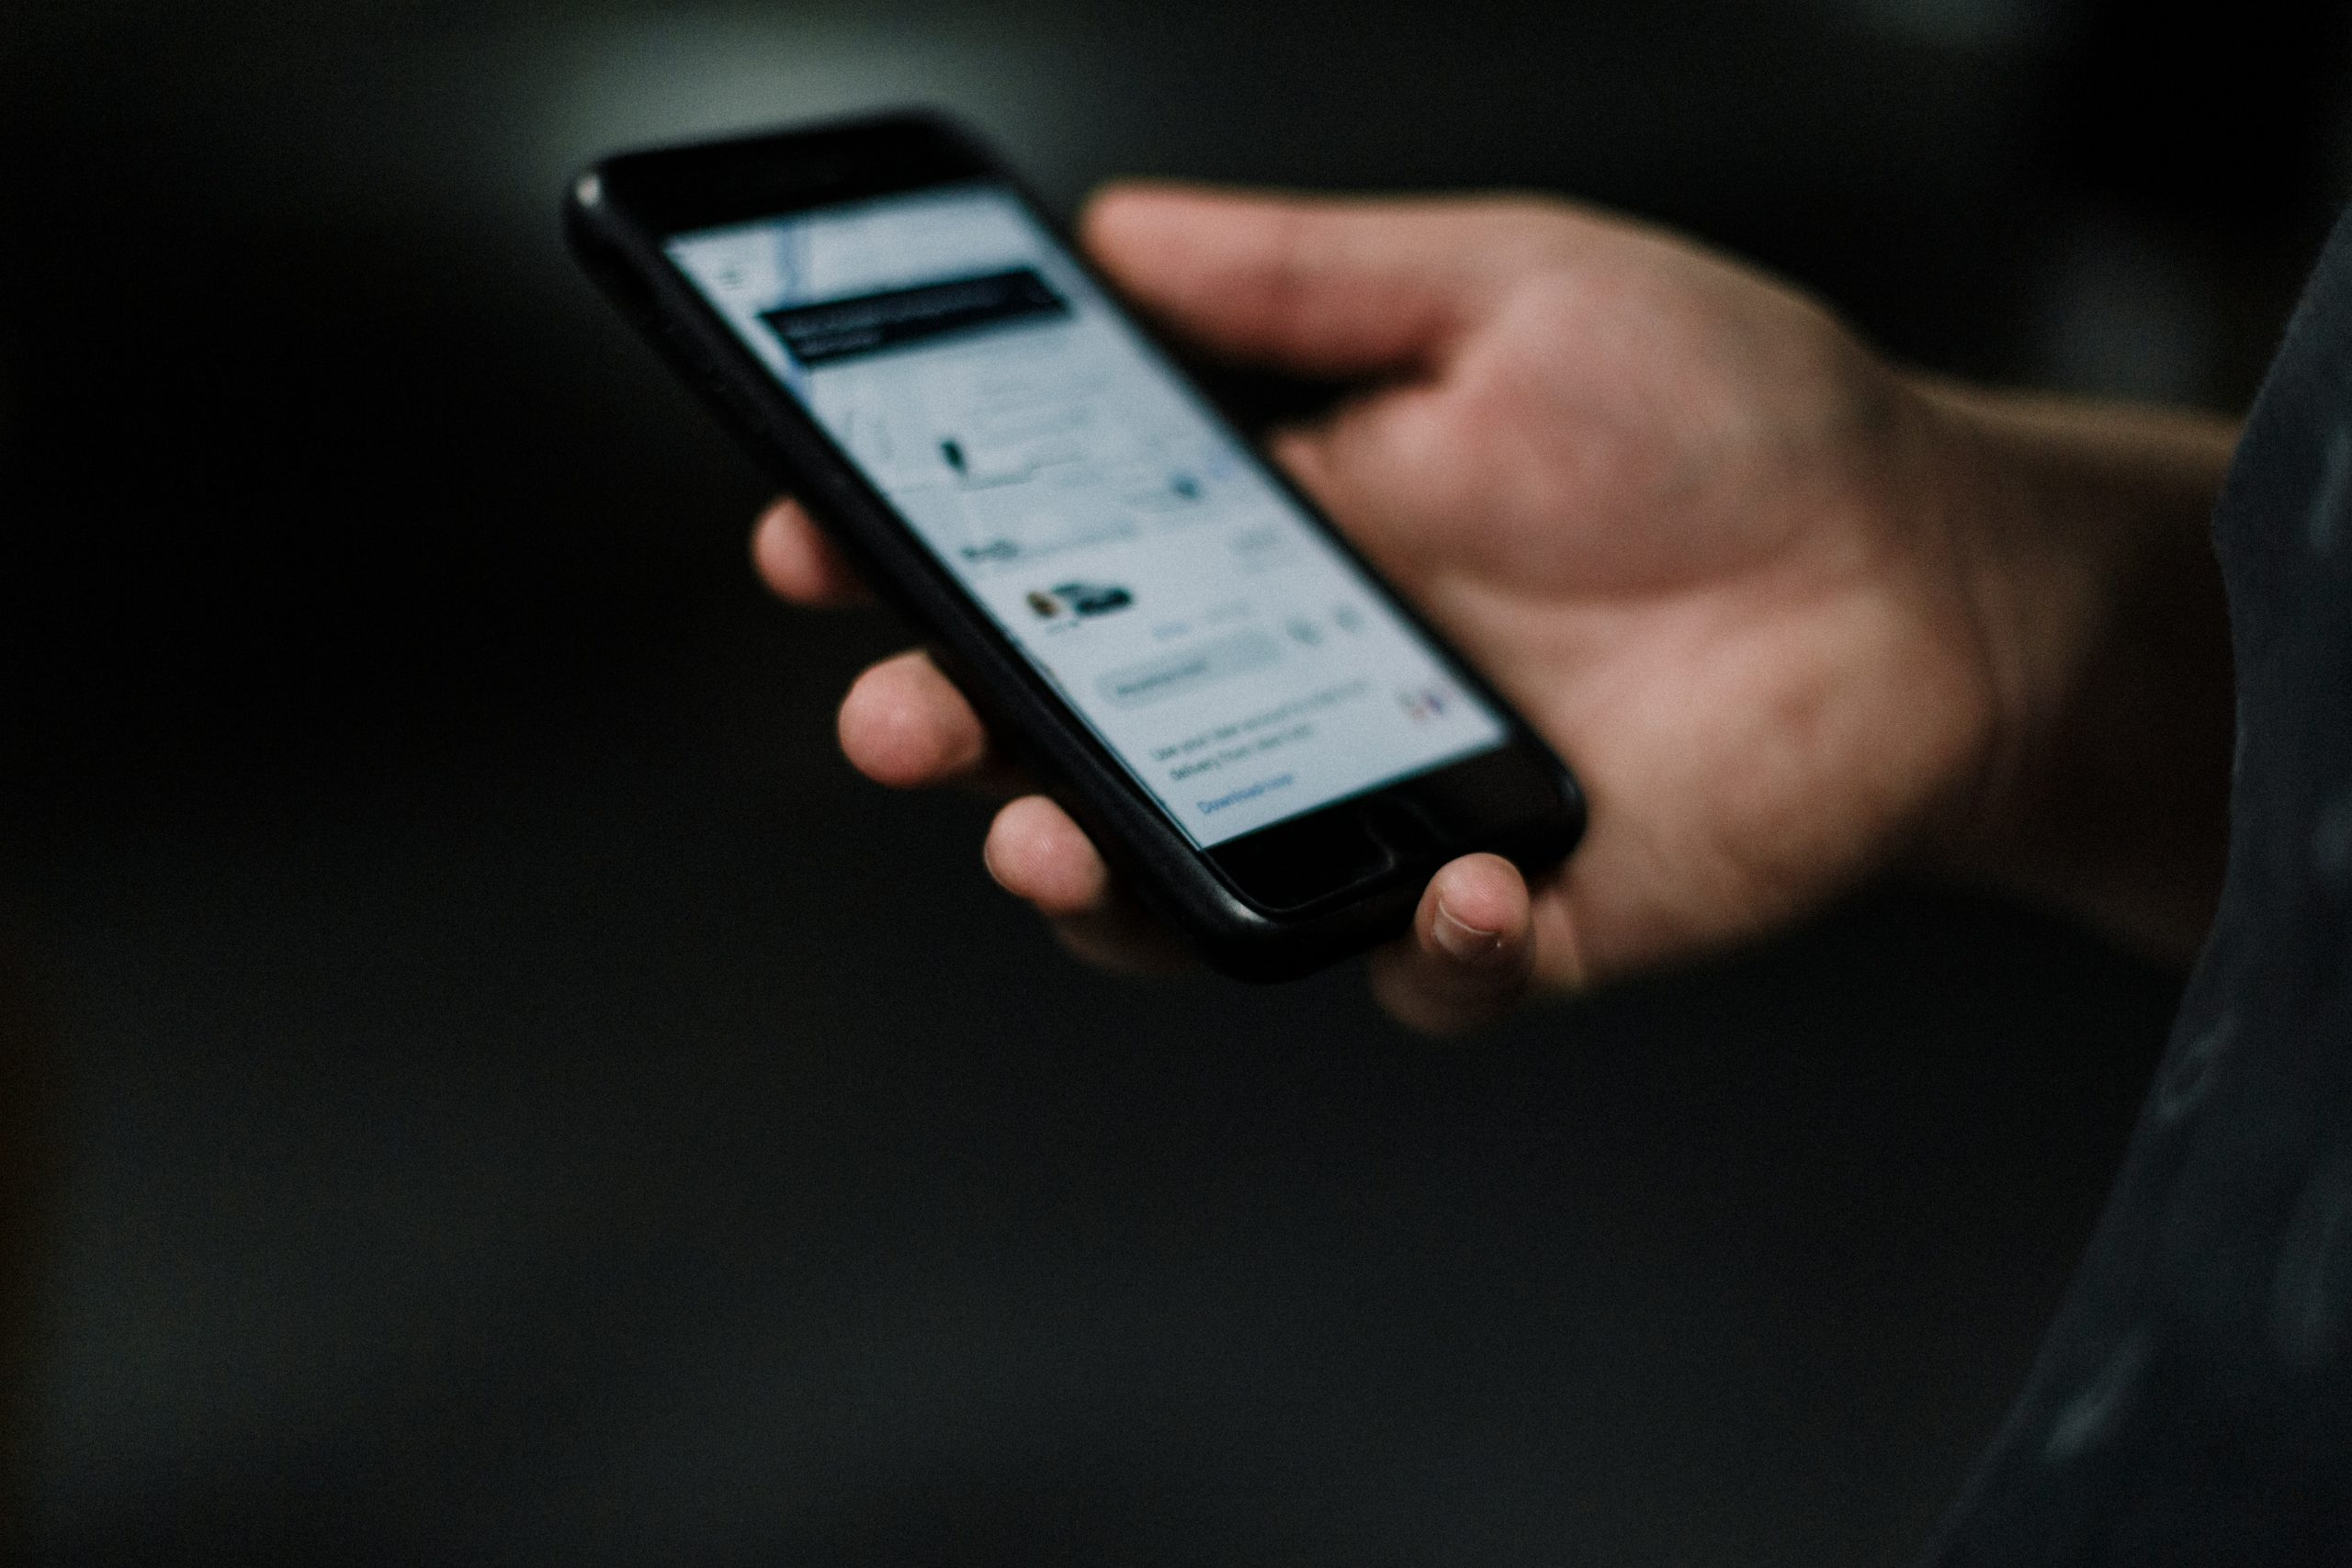 A close up photo shows a hand holding a smartphone with the Uber app up on the screen.